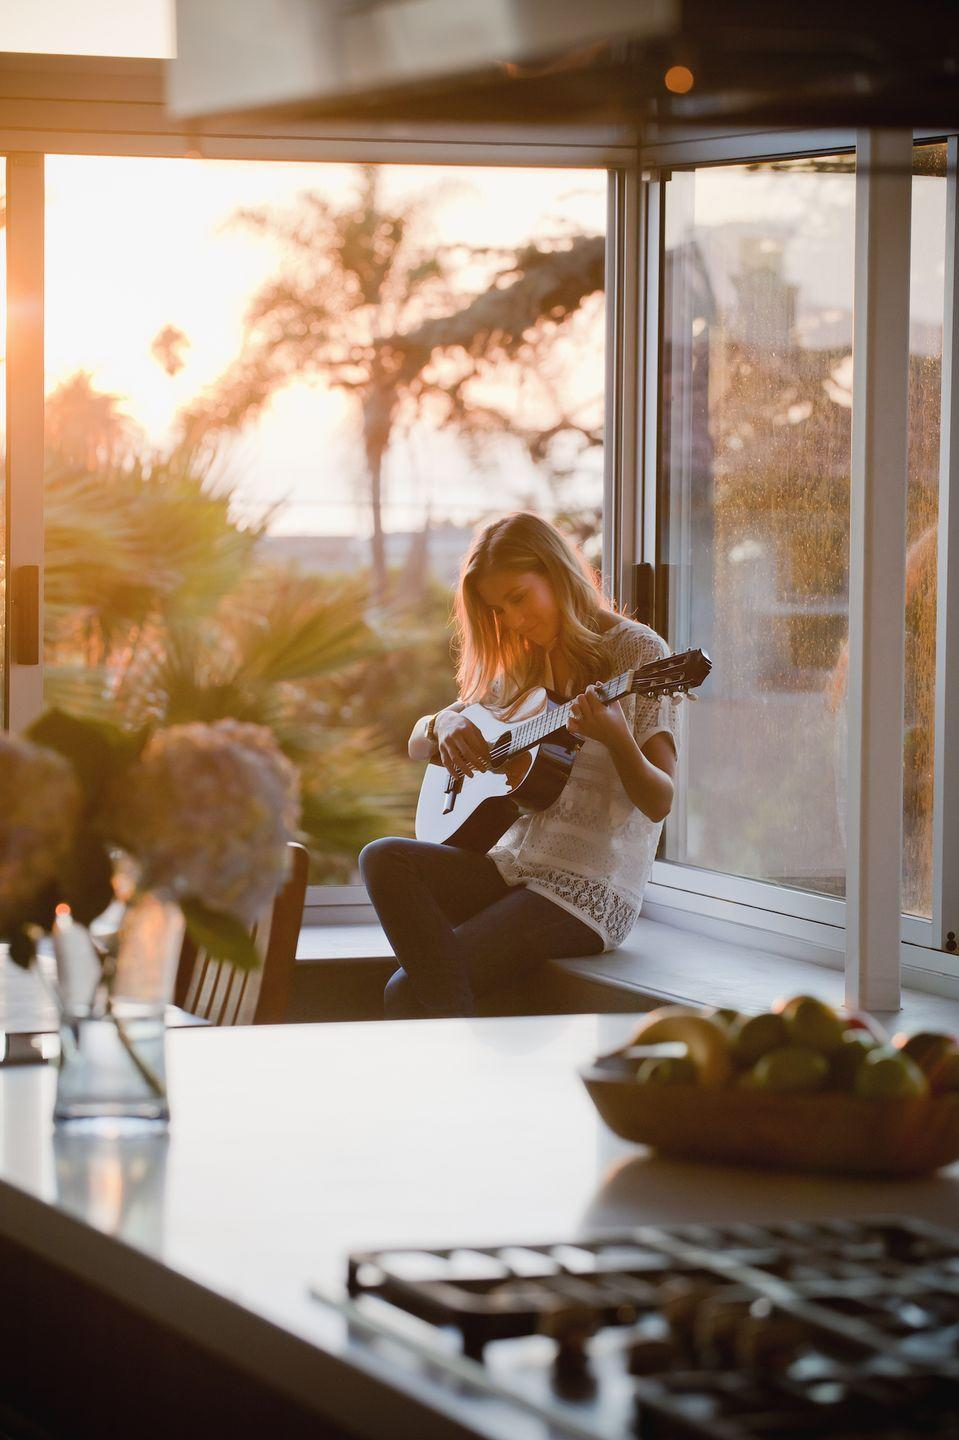 """<p>Berklee College of Music</p><p>Begin learning with the names of the strings and tuning, before moving onto theory with such topics as scales, triads, power chords, and fingering and shapes.</p><p><strong>Duration</strong>: Six weeks</p><p><a class=""""link rapid-noclick-resp"""" href=""""https://go.redirectingat.com?id=127X1599956&url=https%3A%2F%2Fwww.coursera.org%2Flearn%2Fguitar&sref=https%3A%2F%2Fwww.harpersbazaar.com%2Fuk%2Fculture%2Flifestyle_homes%2Fg36582849%2Fbest-online-learning-courses%2F"""" rel=""""nofollow noopener"""" target=""""_blank"""" data-ylk=""""slk:ENROLL FOR FREE"""">ENROLL FOR FREE </a></p>"""